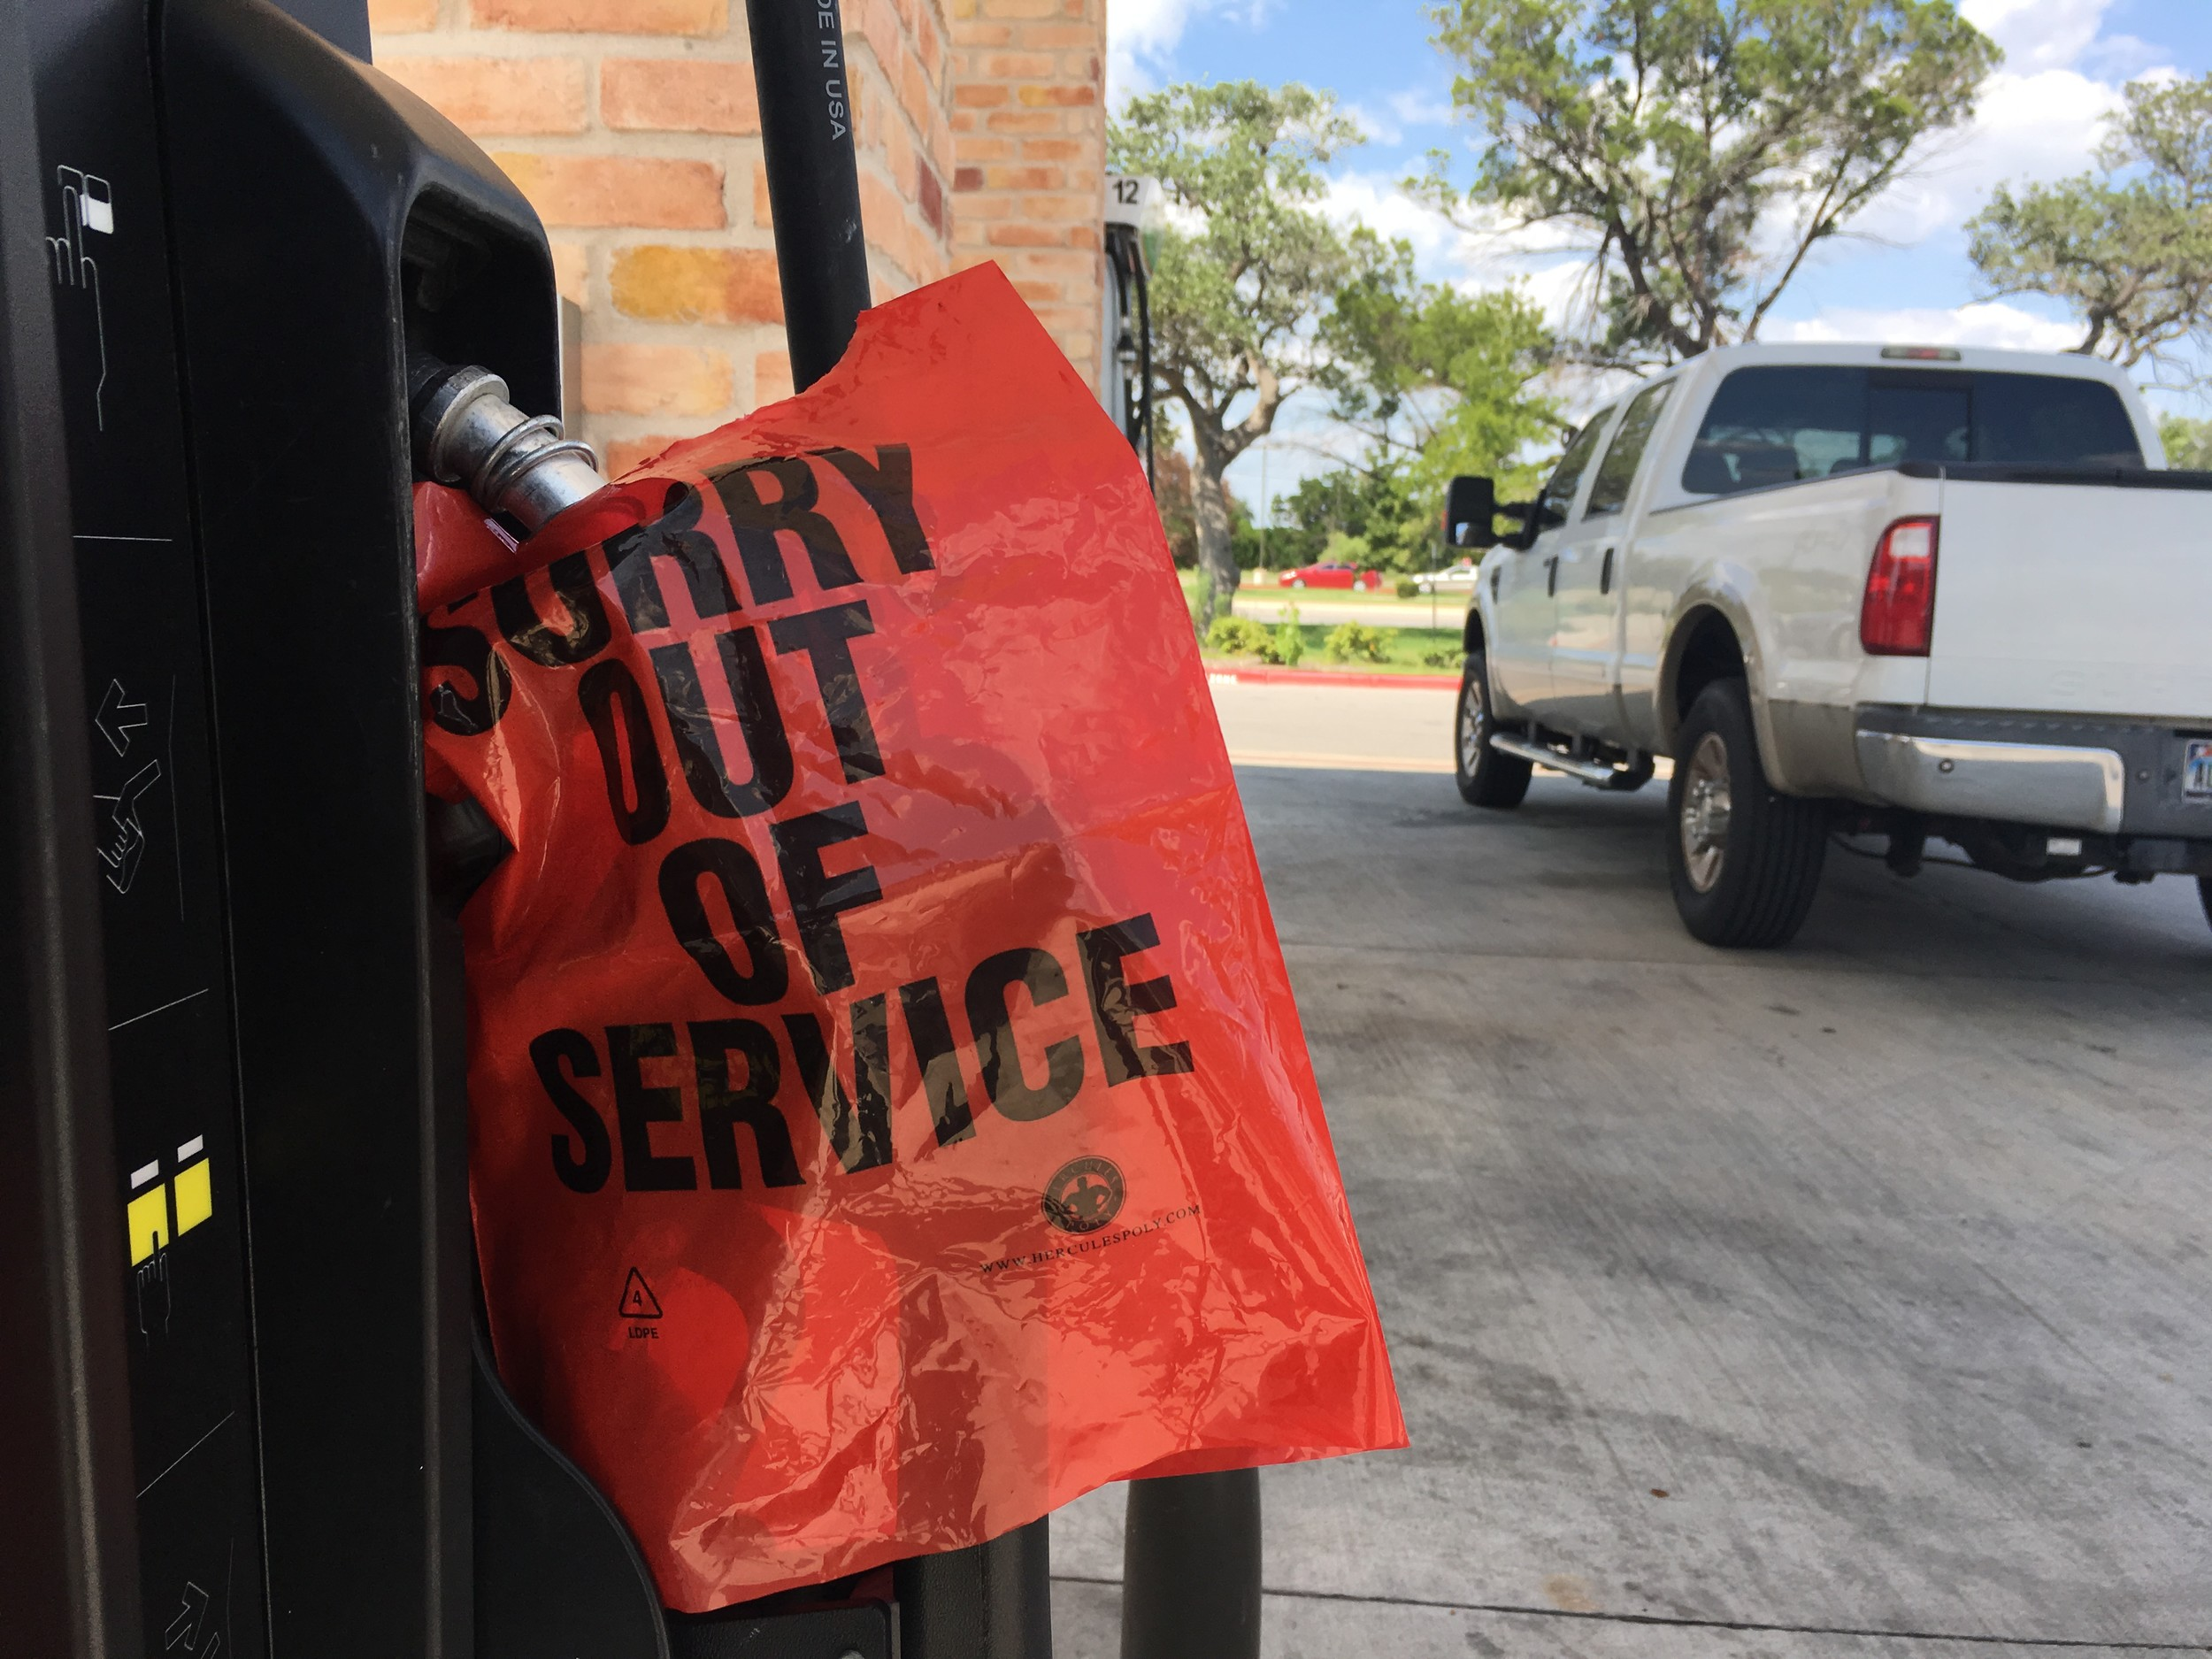 A 7-Eleven in Cedar Park ran out of gas Thursday. Officials say an increased public demand following rumors of gas shortages from the effects of Hurricane Harvey caused the shortages.